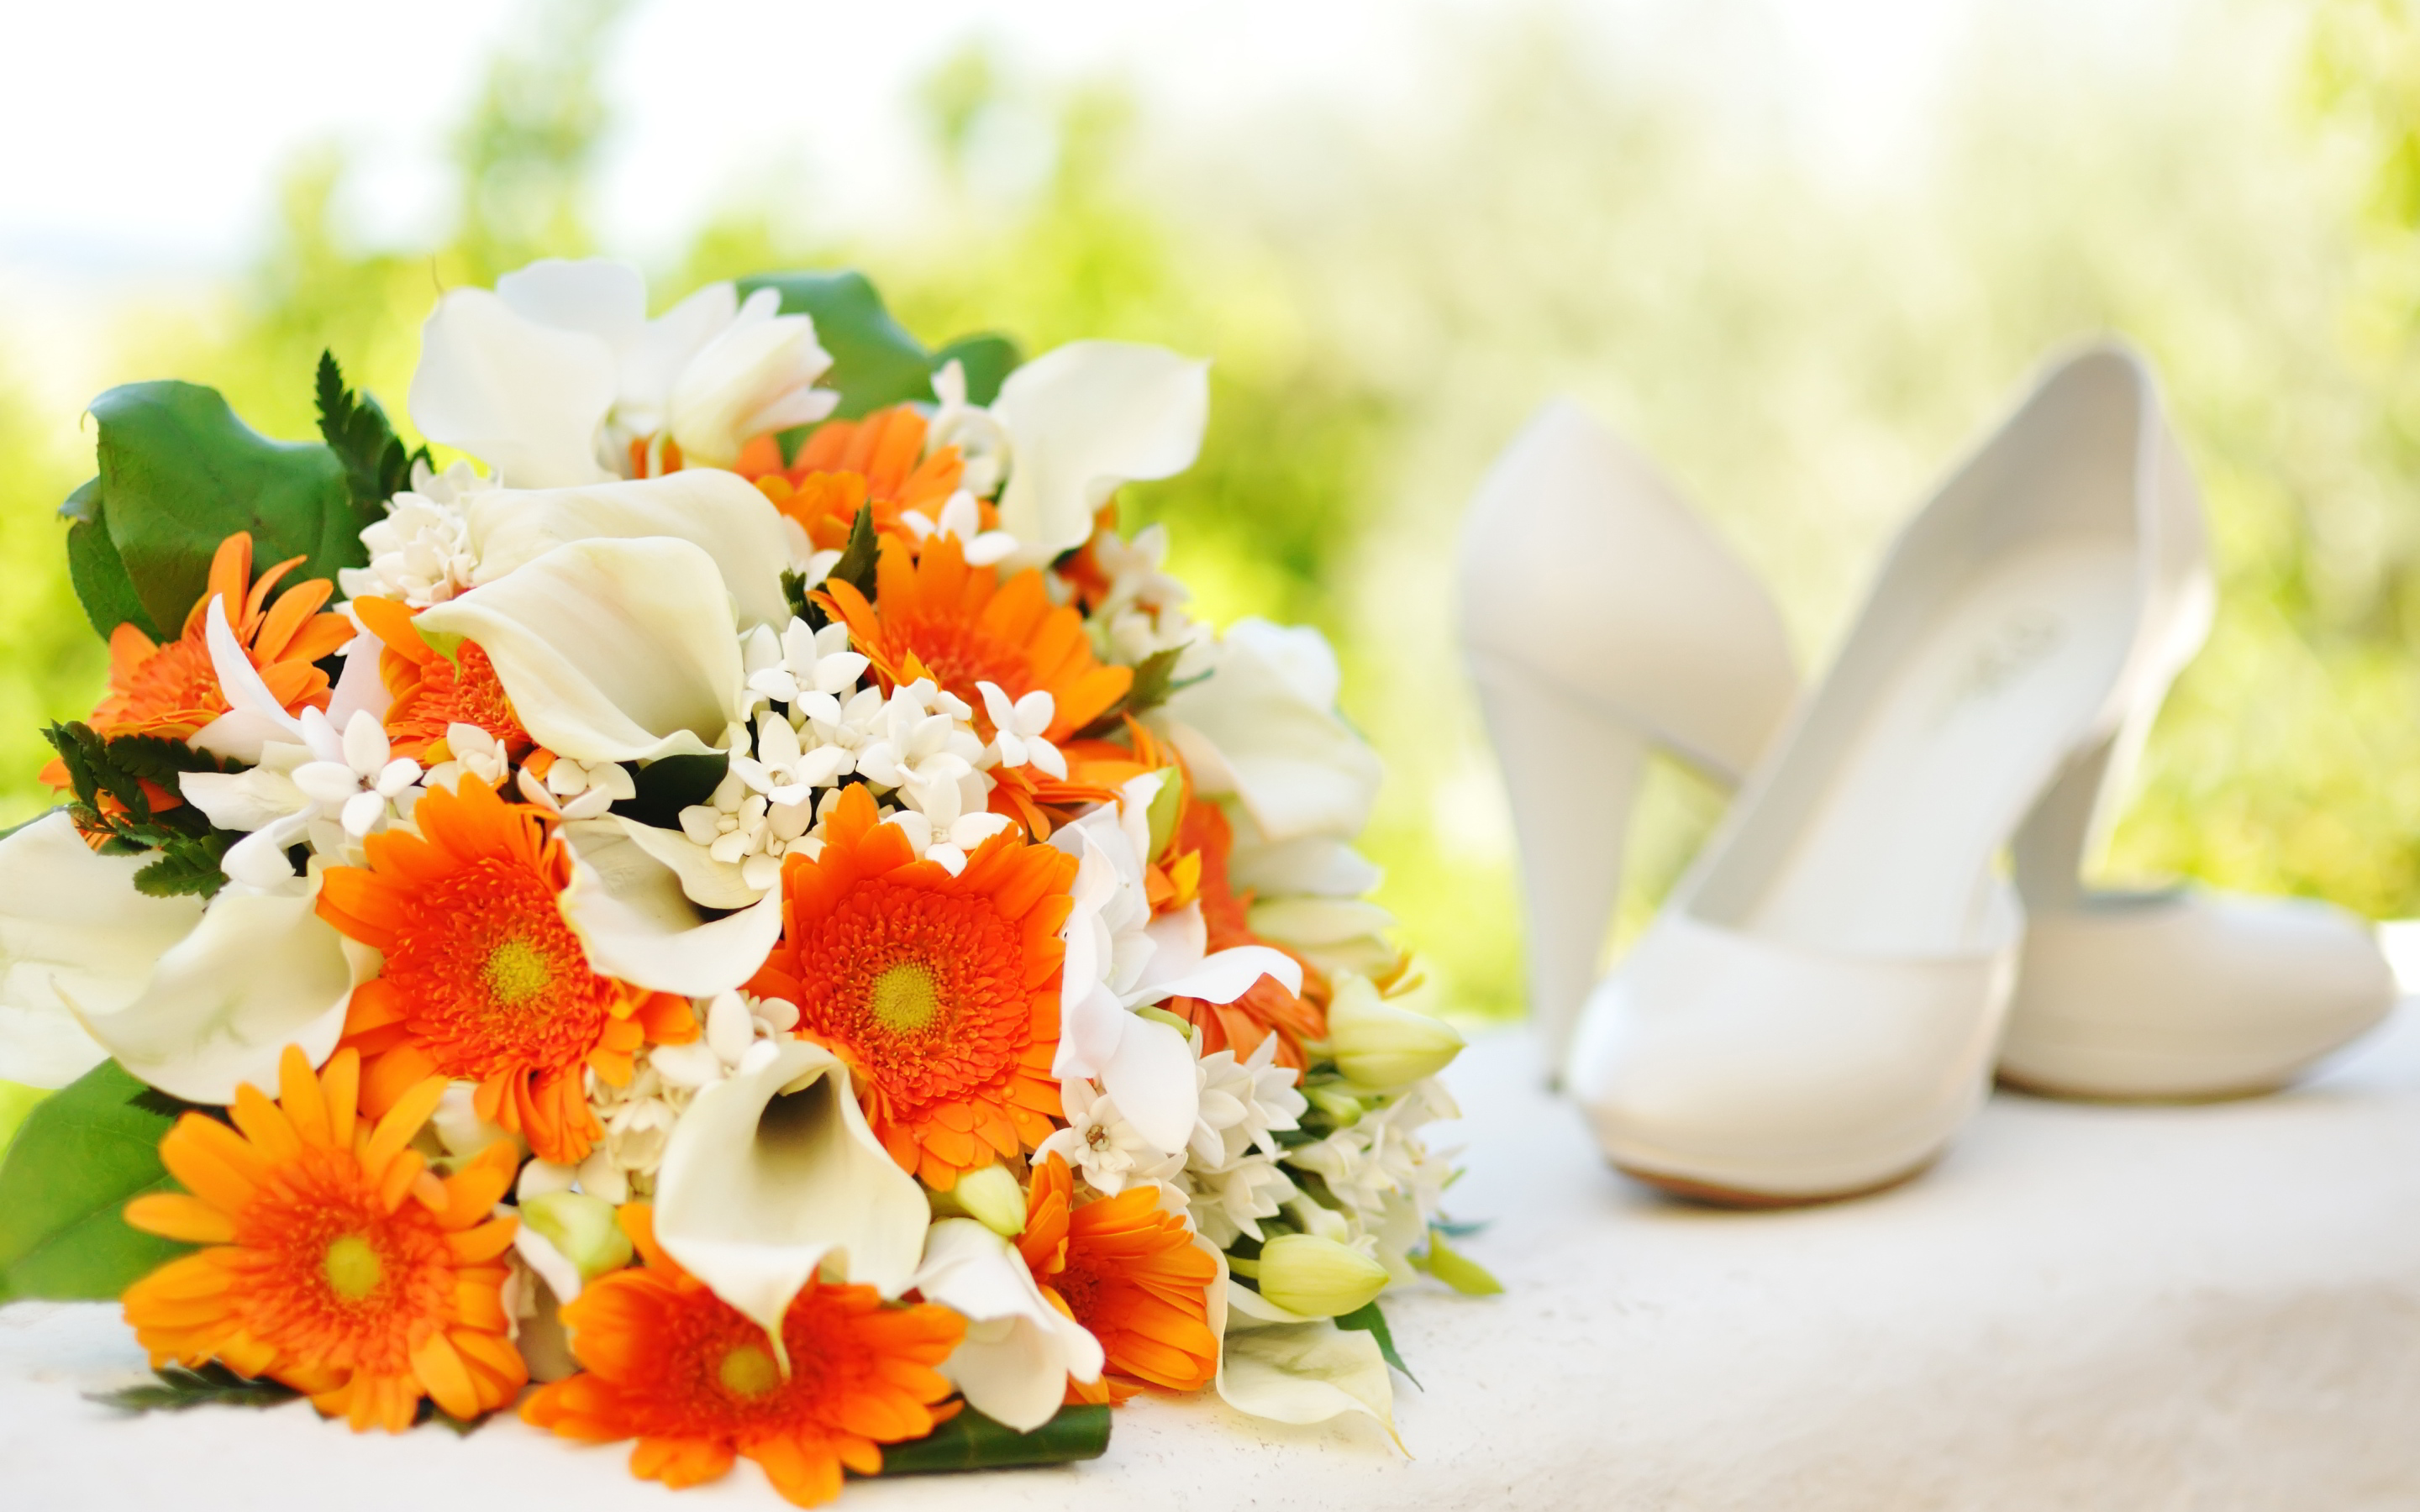 flower bouquet widescreen wallpaper 52253